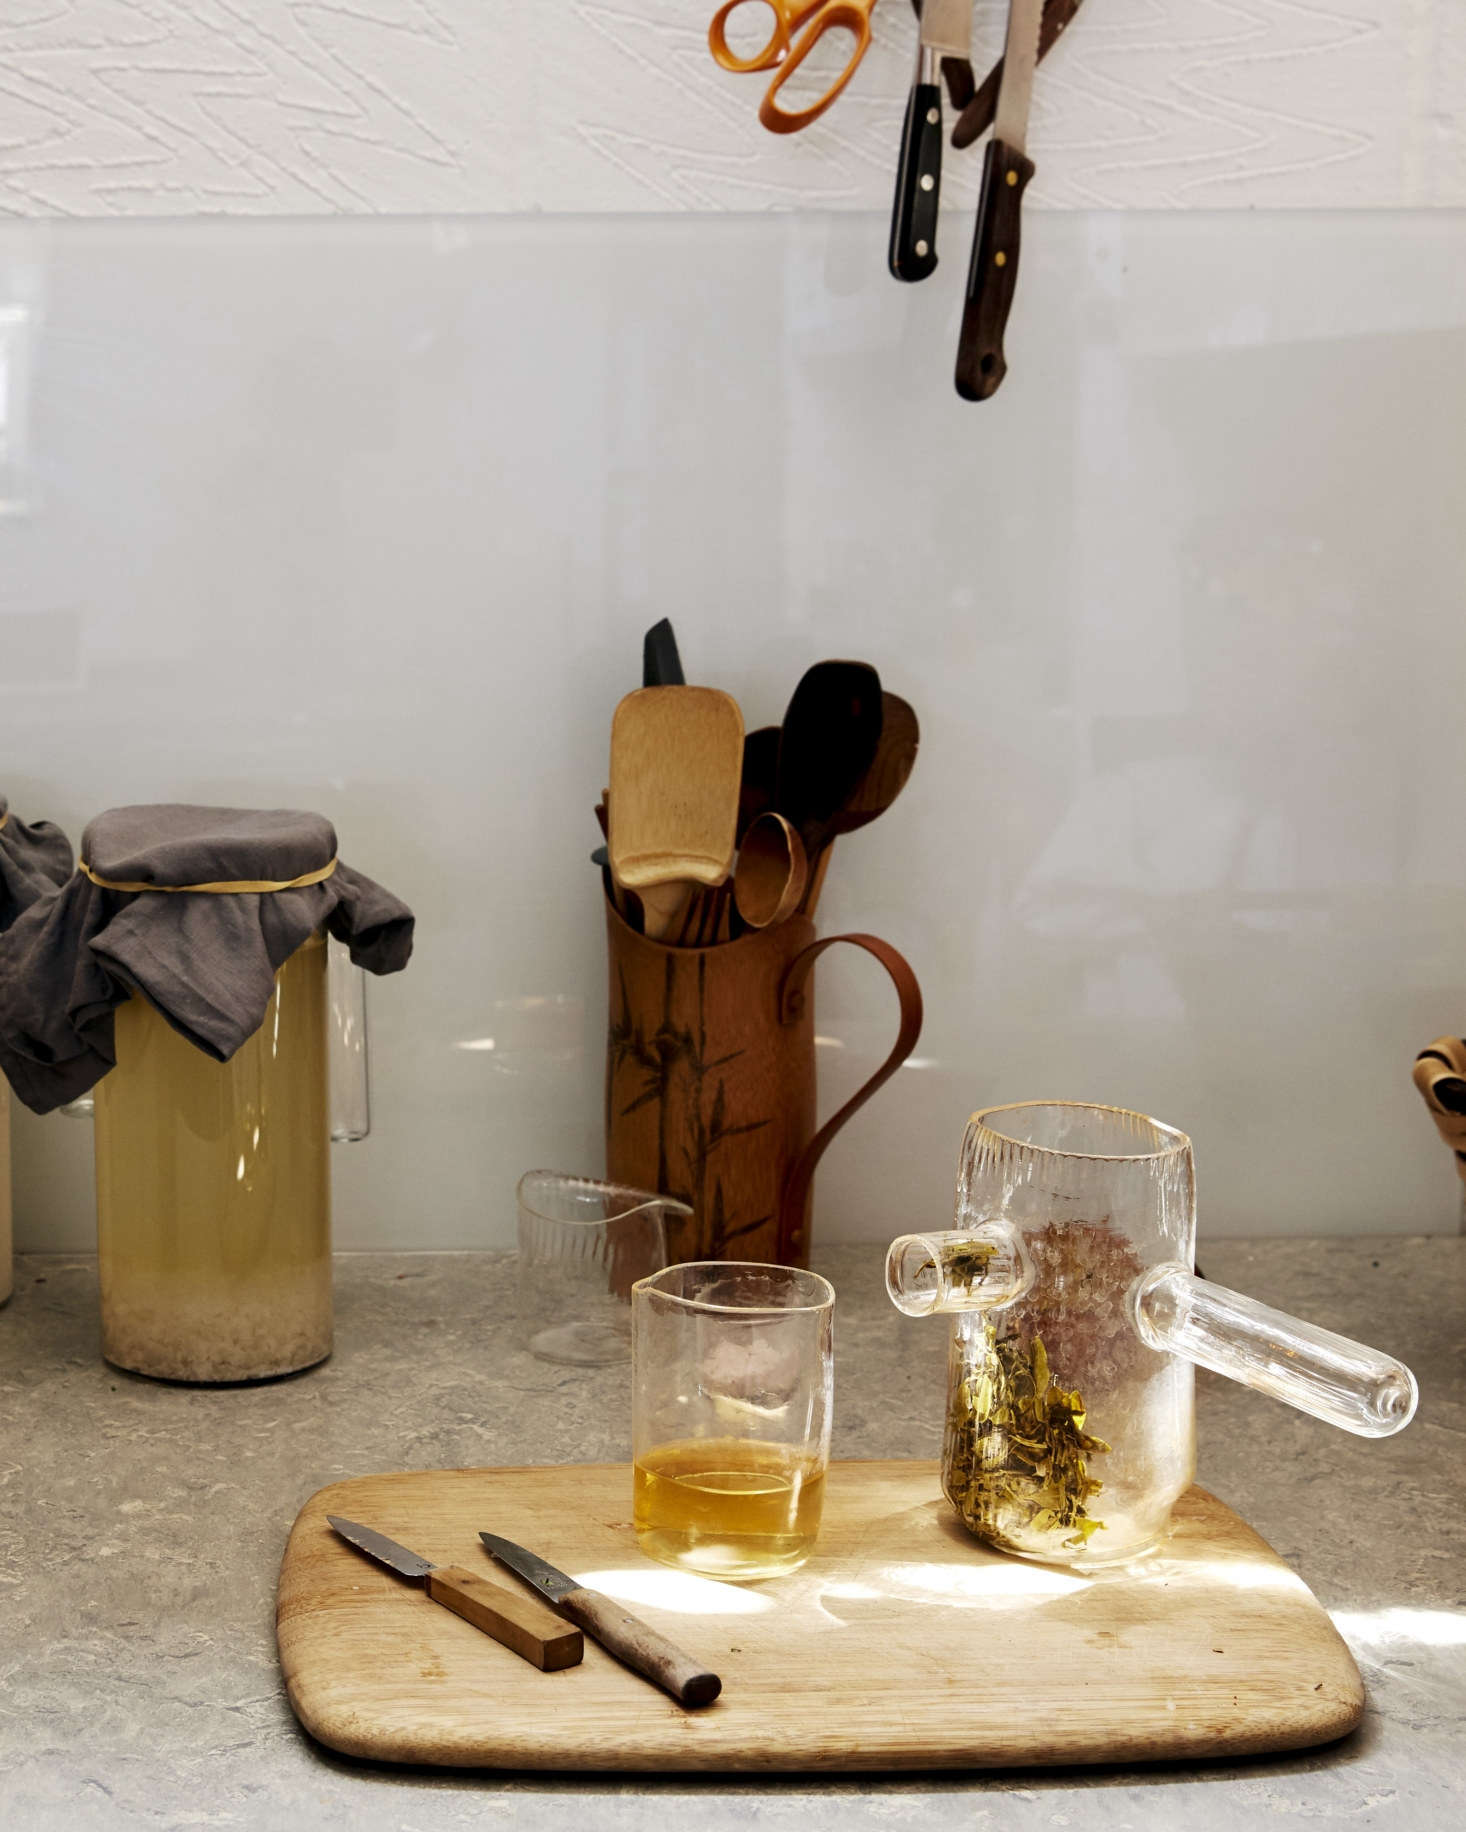 Detail in Jochen Holz Studio Kitchen, Photo by Kim Lightbody